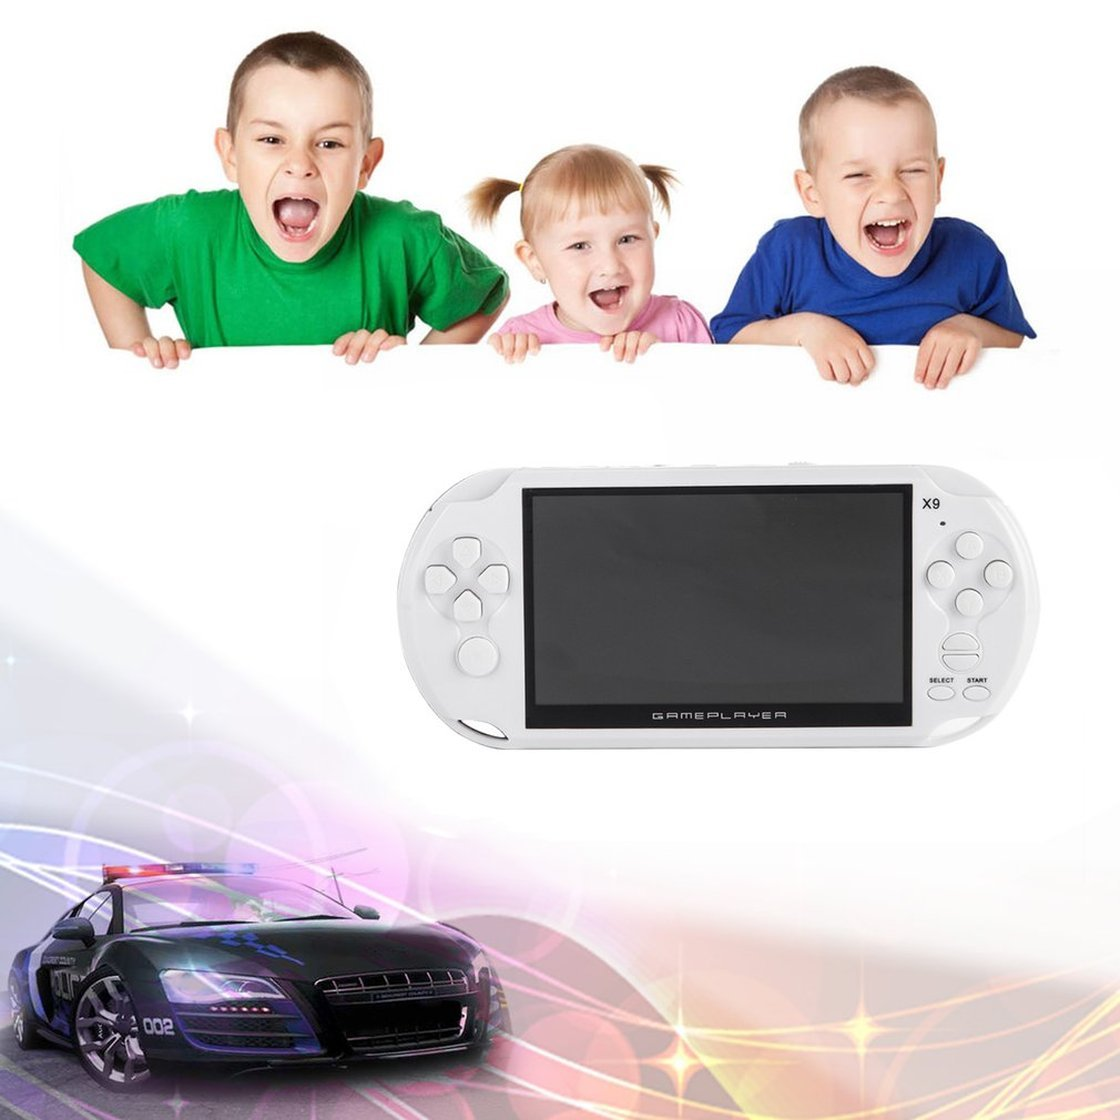 Exiao 5.0 Inch Large Screen 8GB Game Console Handheld Game Player MP3 Player by Exiao (Image #5)